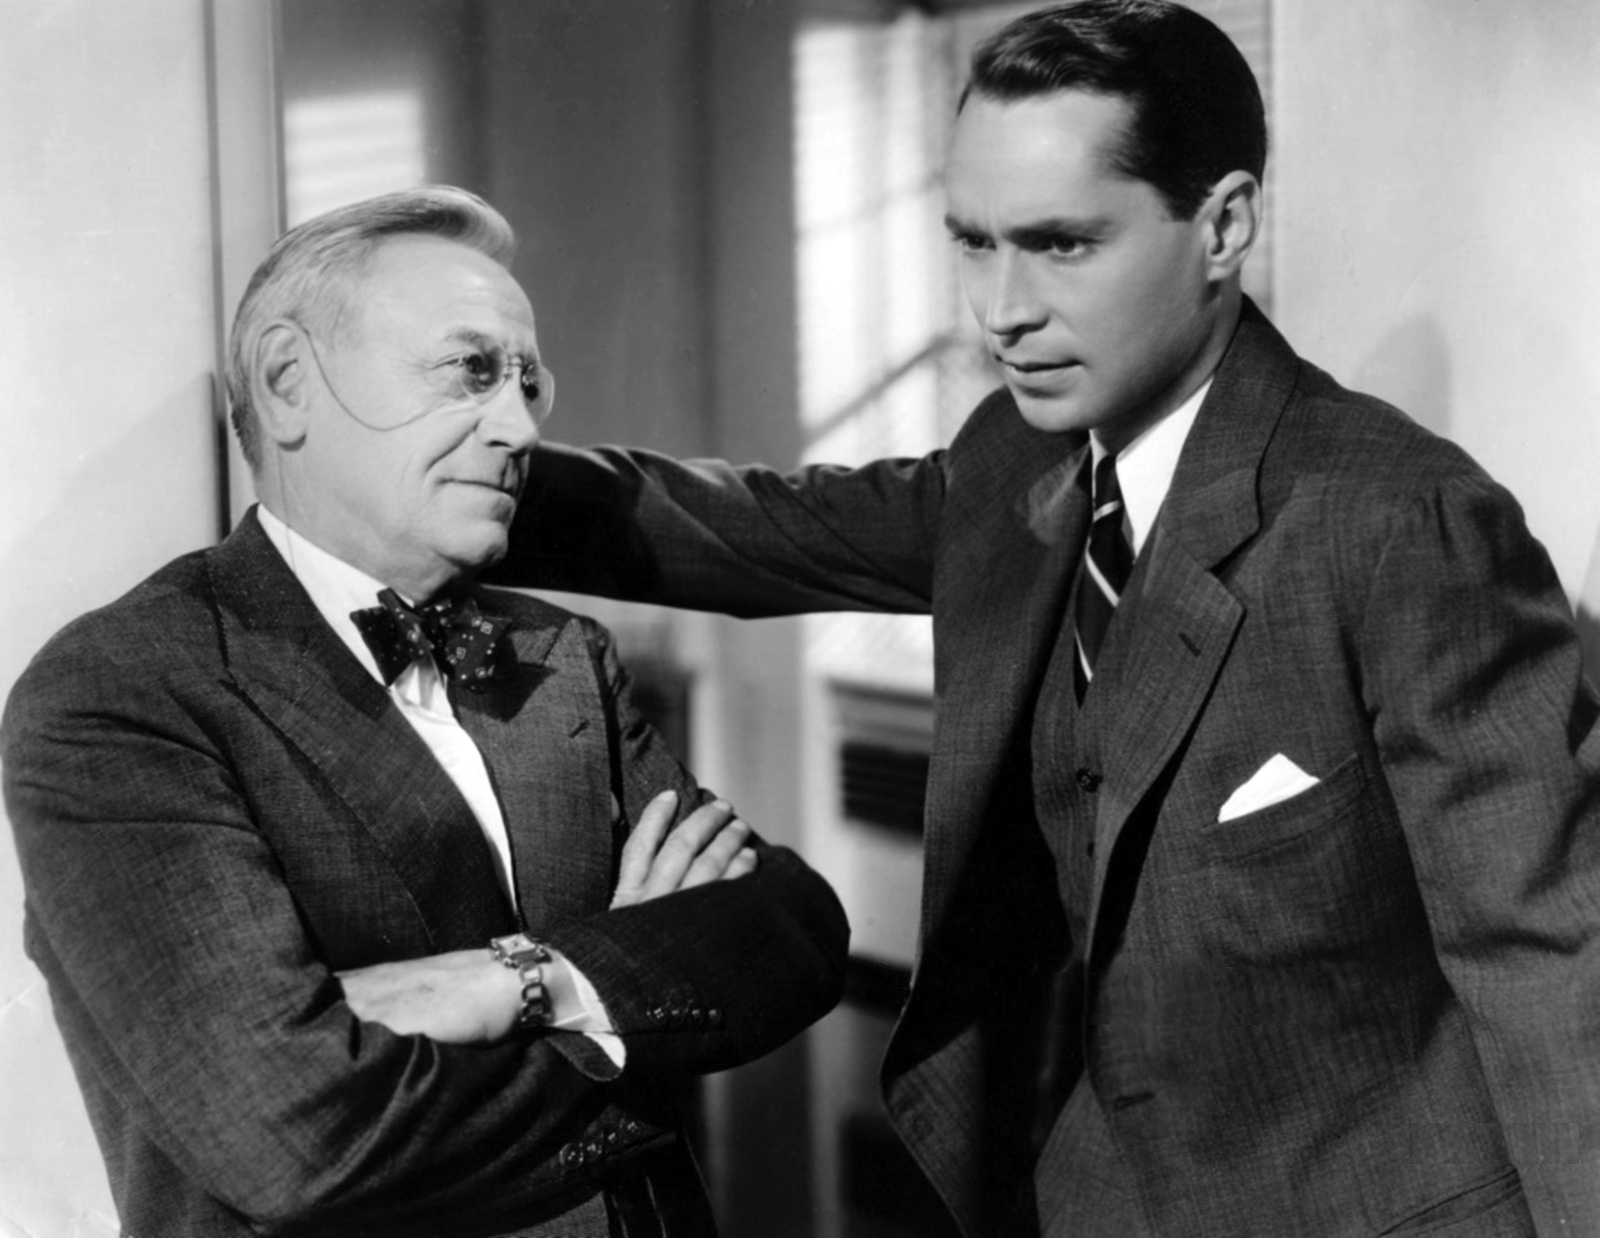 Franchot Tone With Charley Grapewin (L).